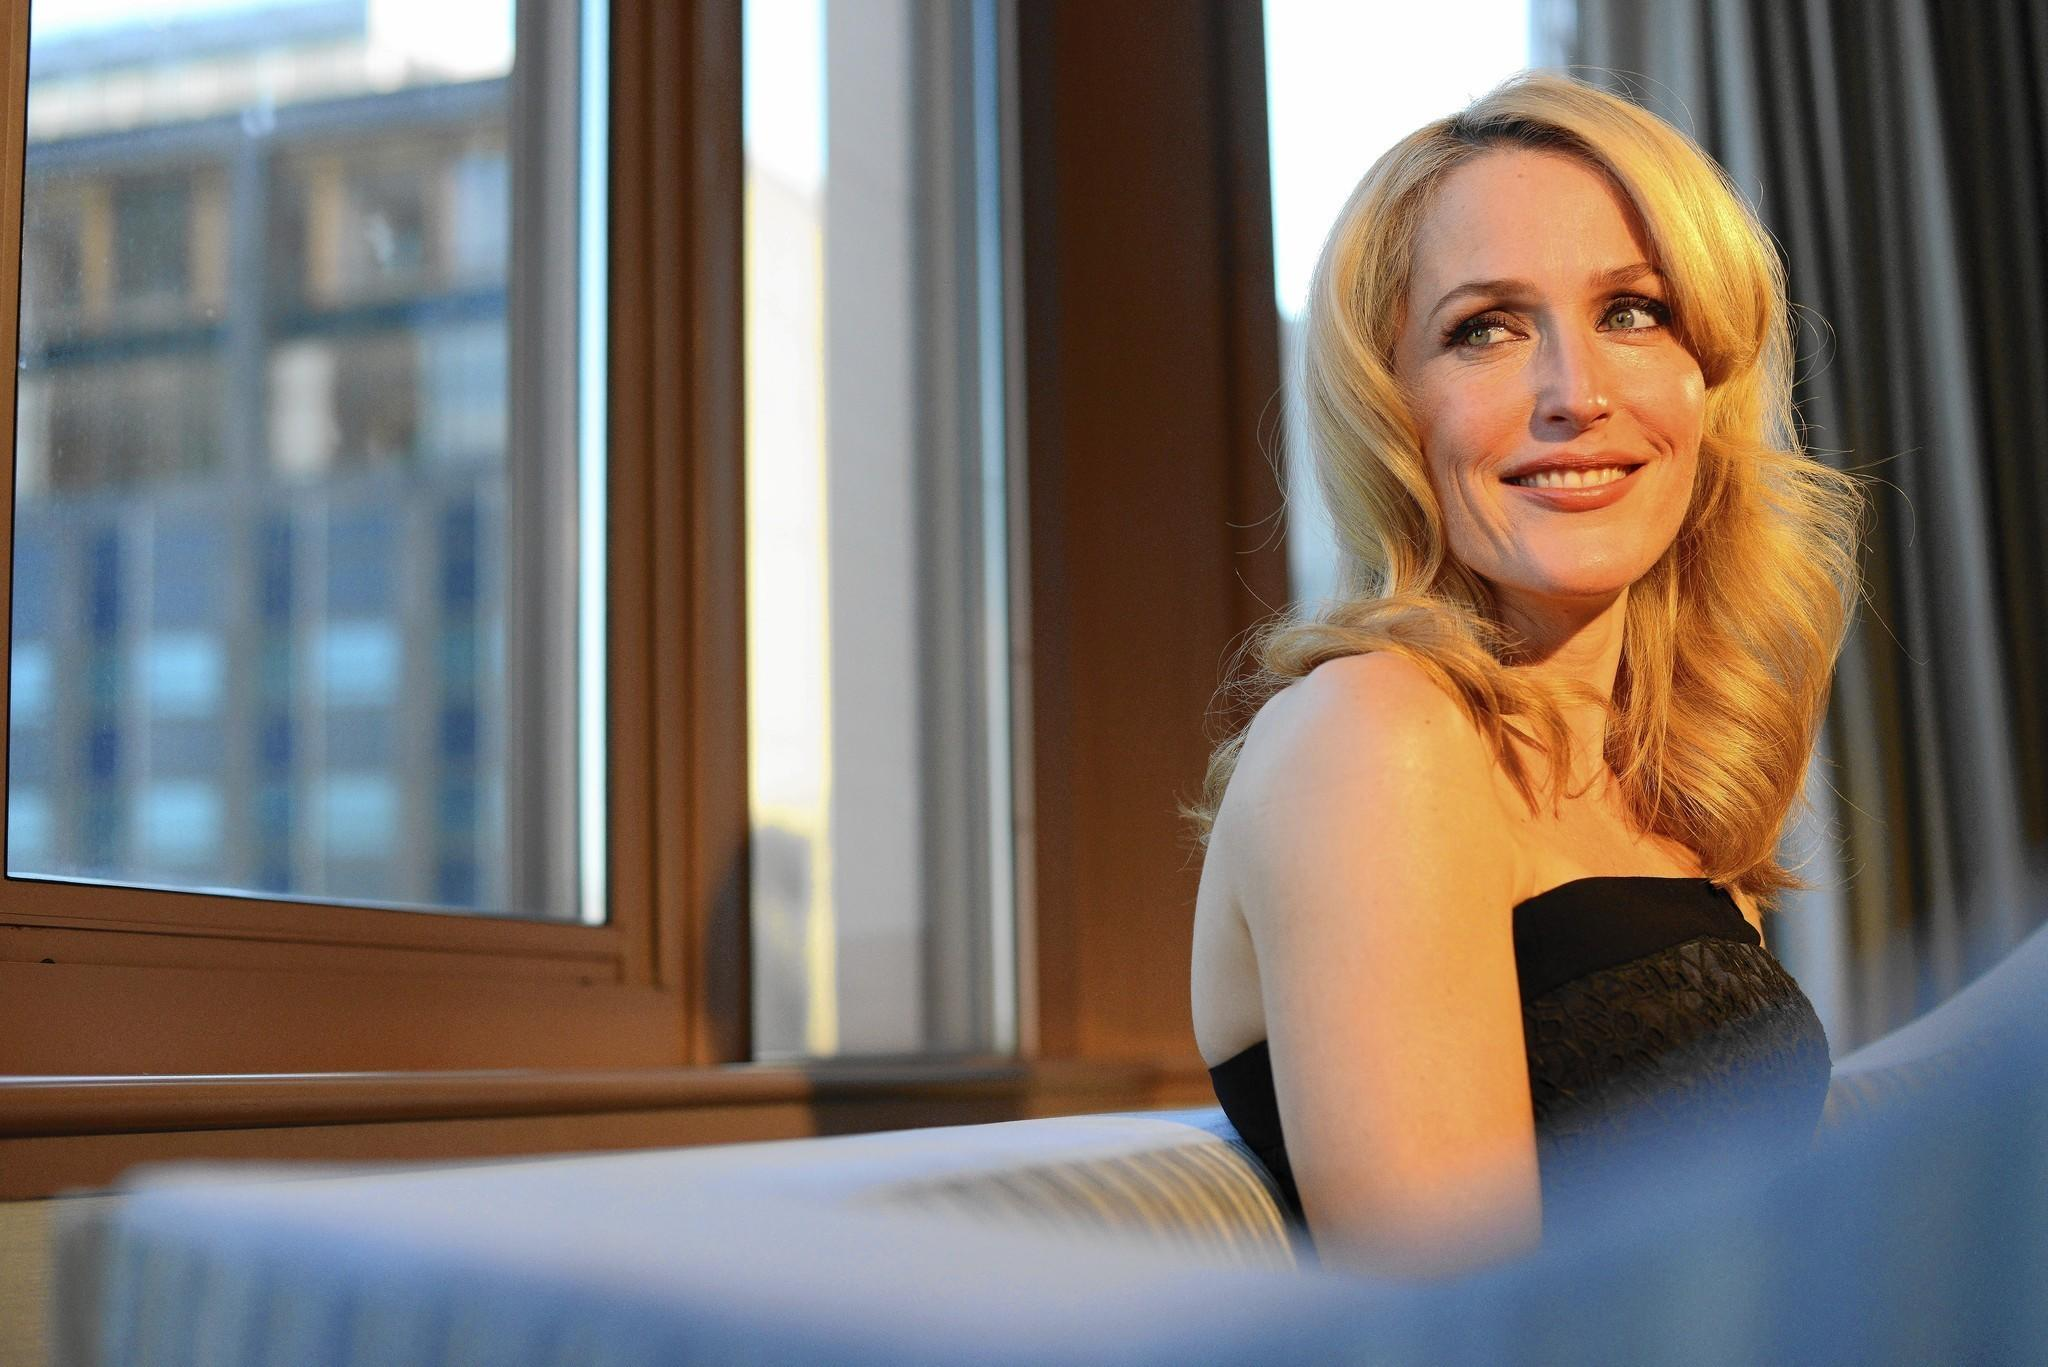 Gillian Anderson at the London Hotel in Manhattan, NY.